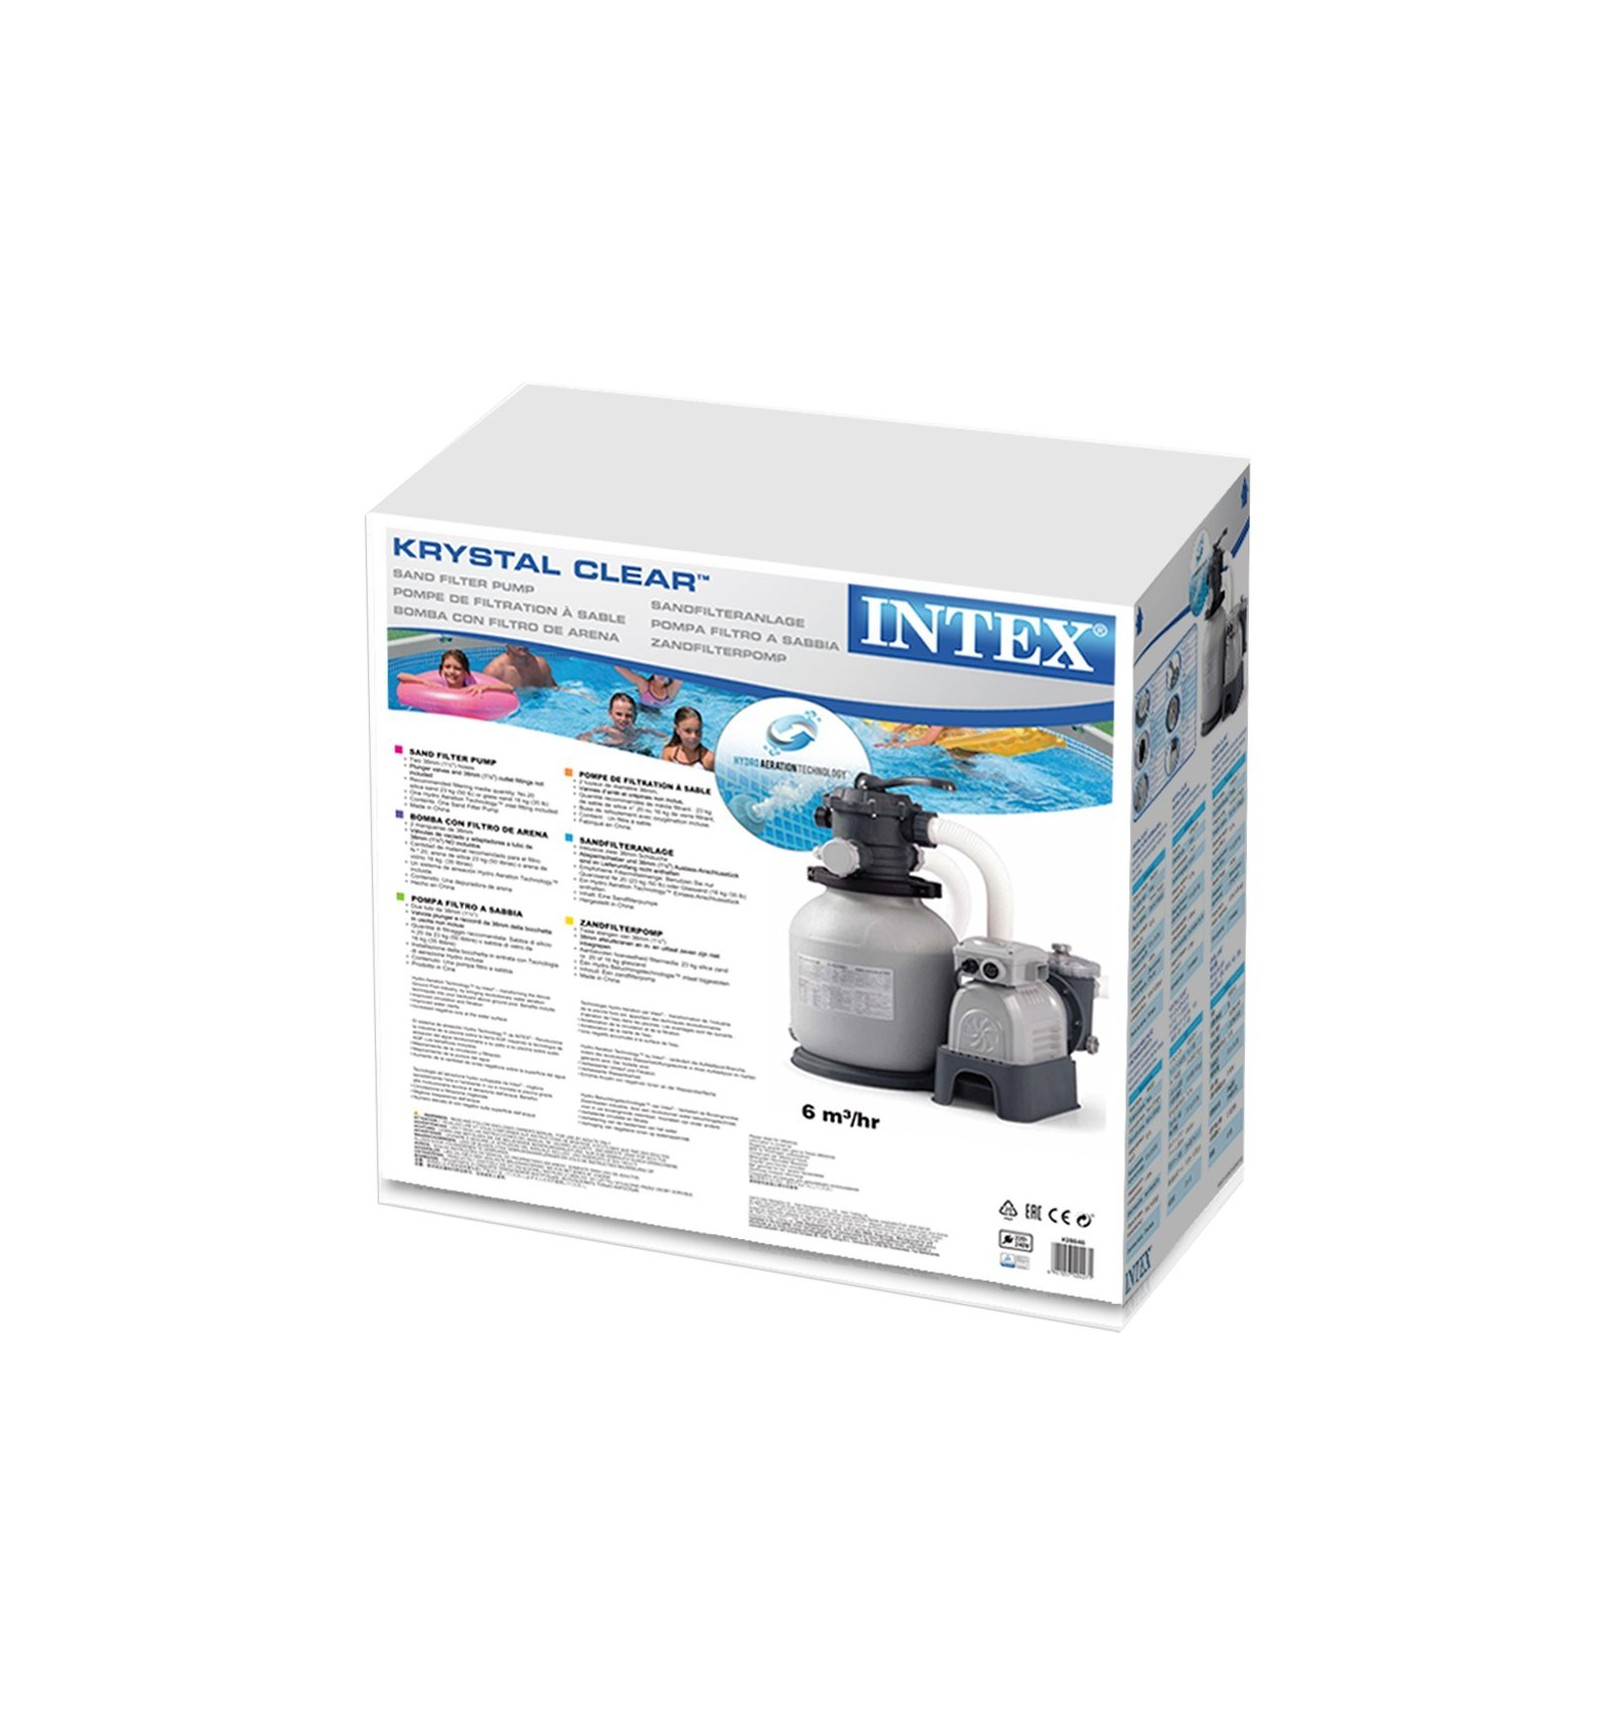 Intex Pool Filter Pump Parts Intex Krystal Clear Sand Filter And Pump 2 100gal Hr